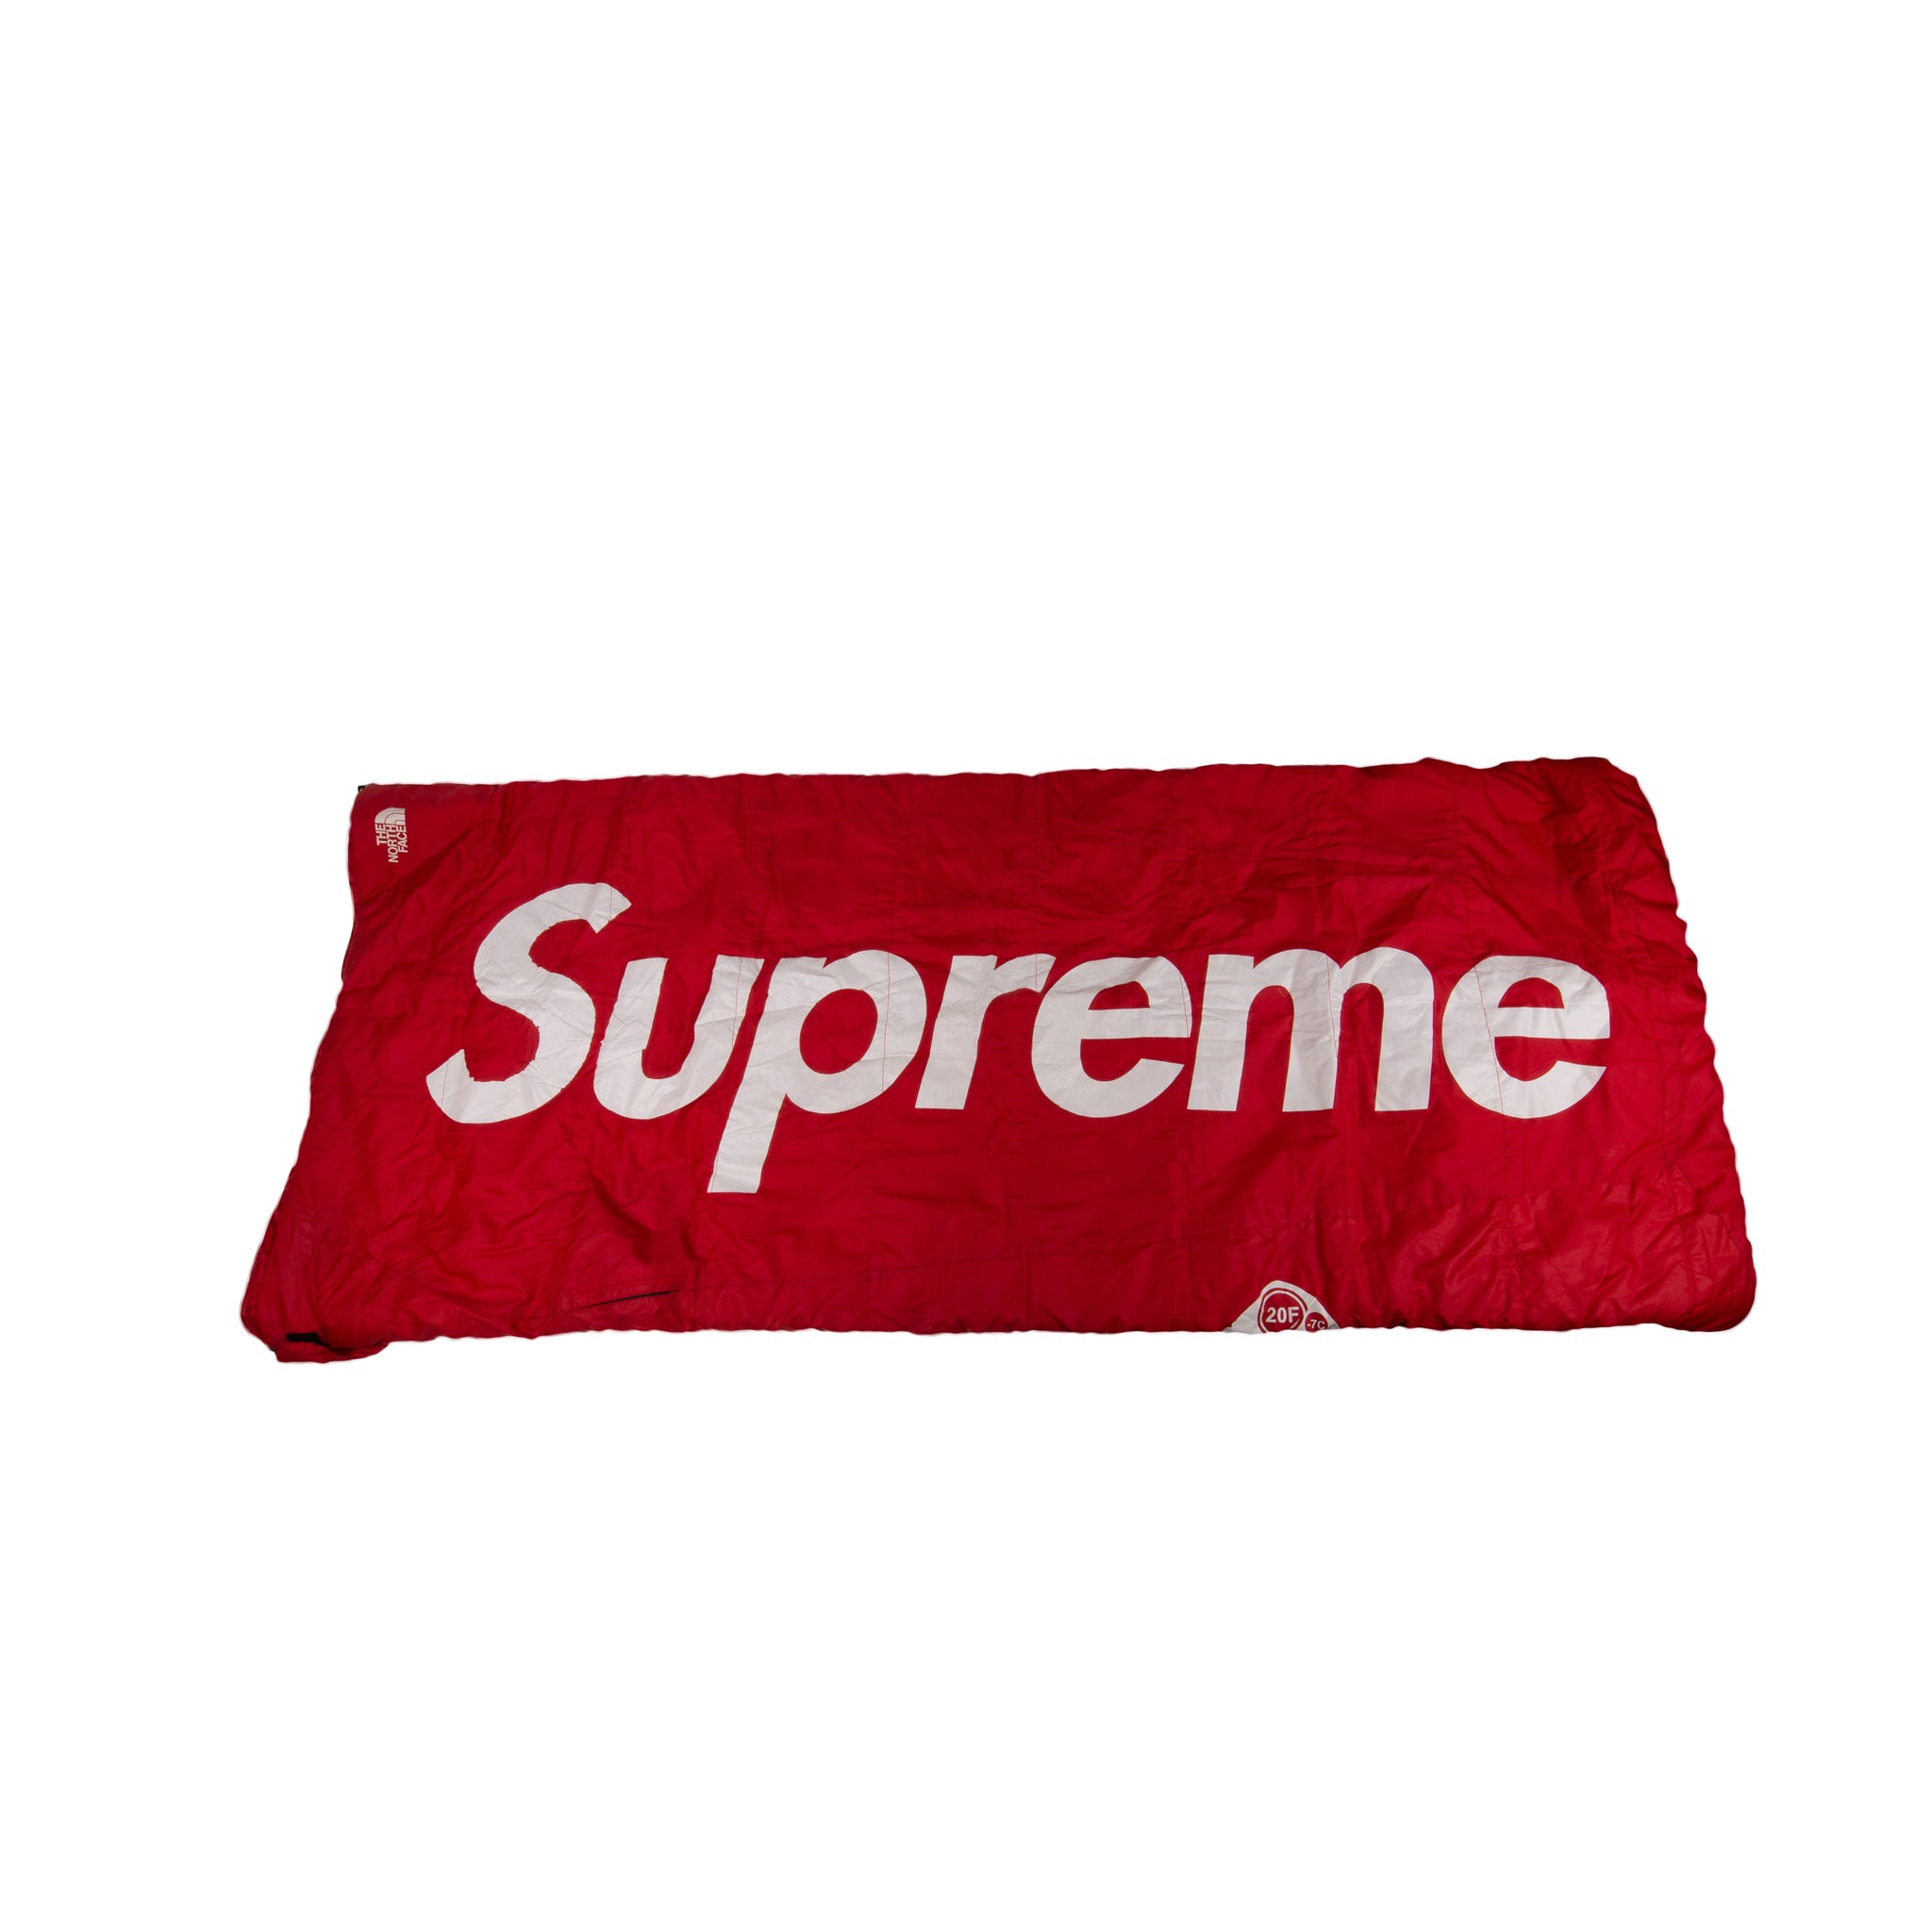 Supreme Red TNF Dolomite Sleeping Bag